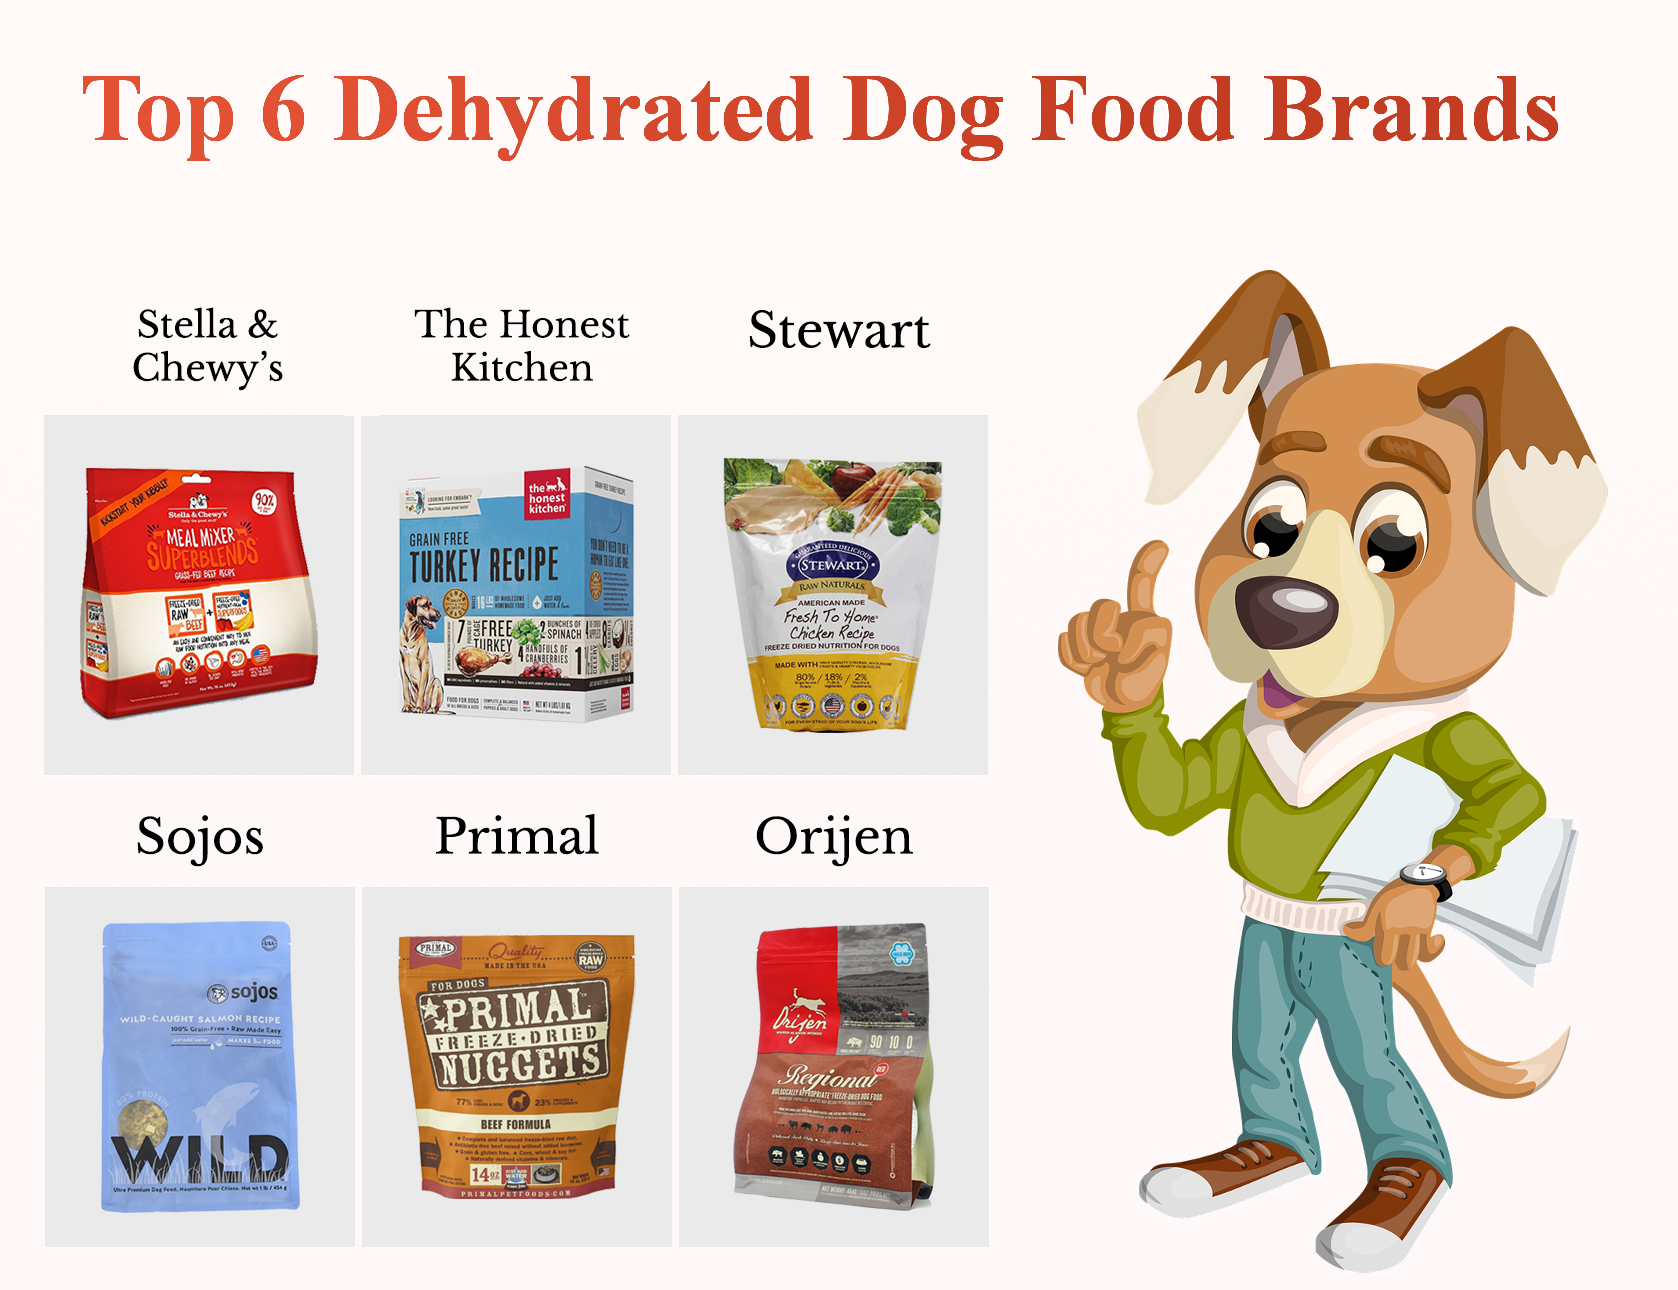 Top 6 dehydrated dog food brands